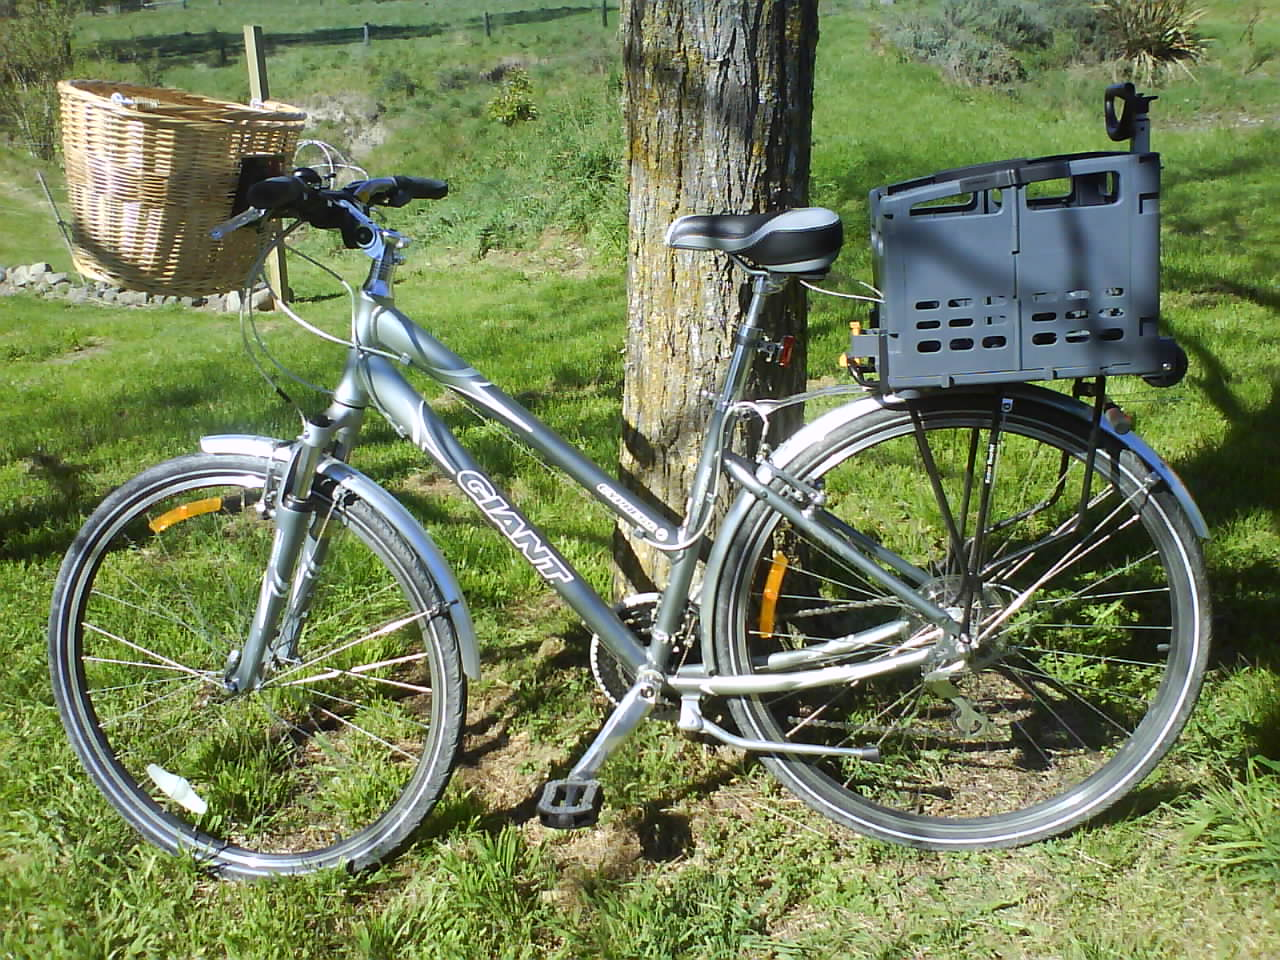 My lovely new bicycle